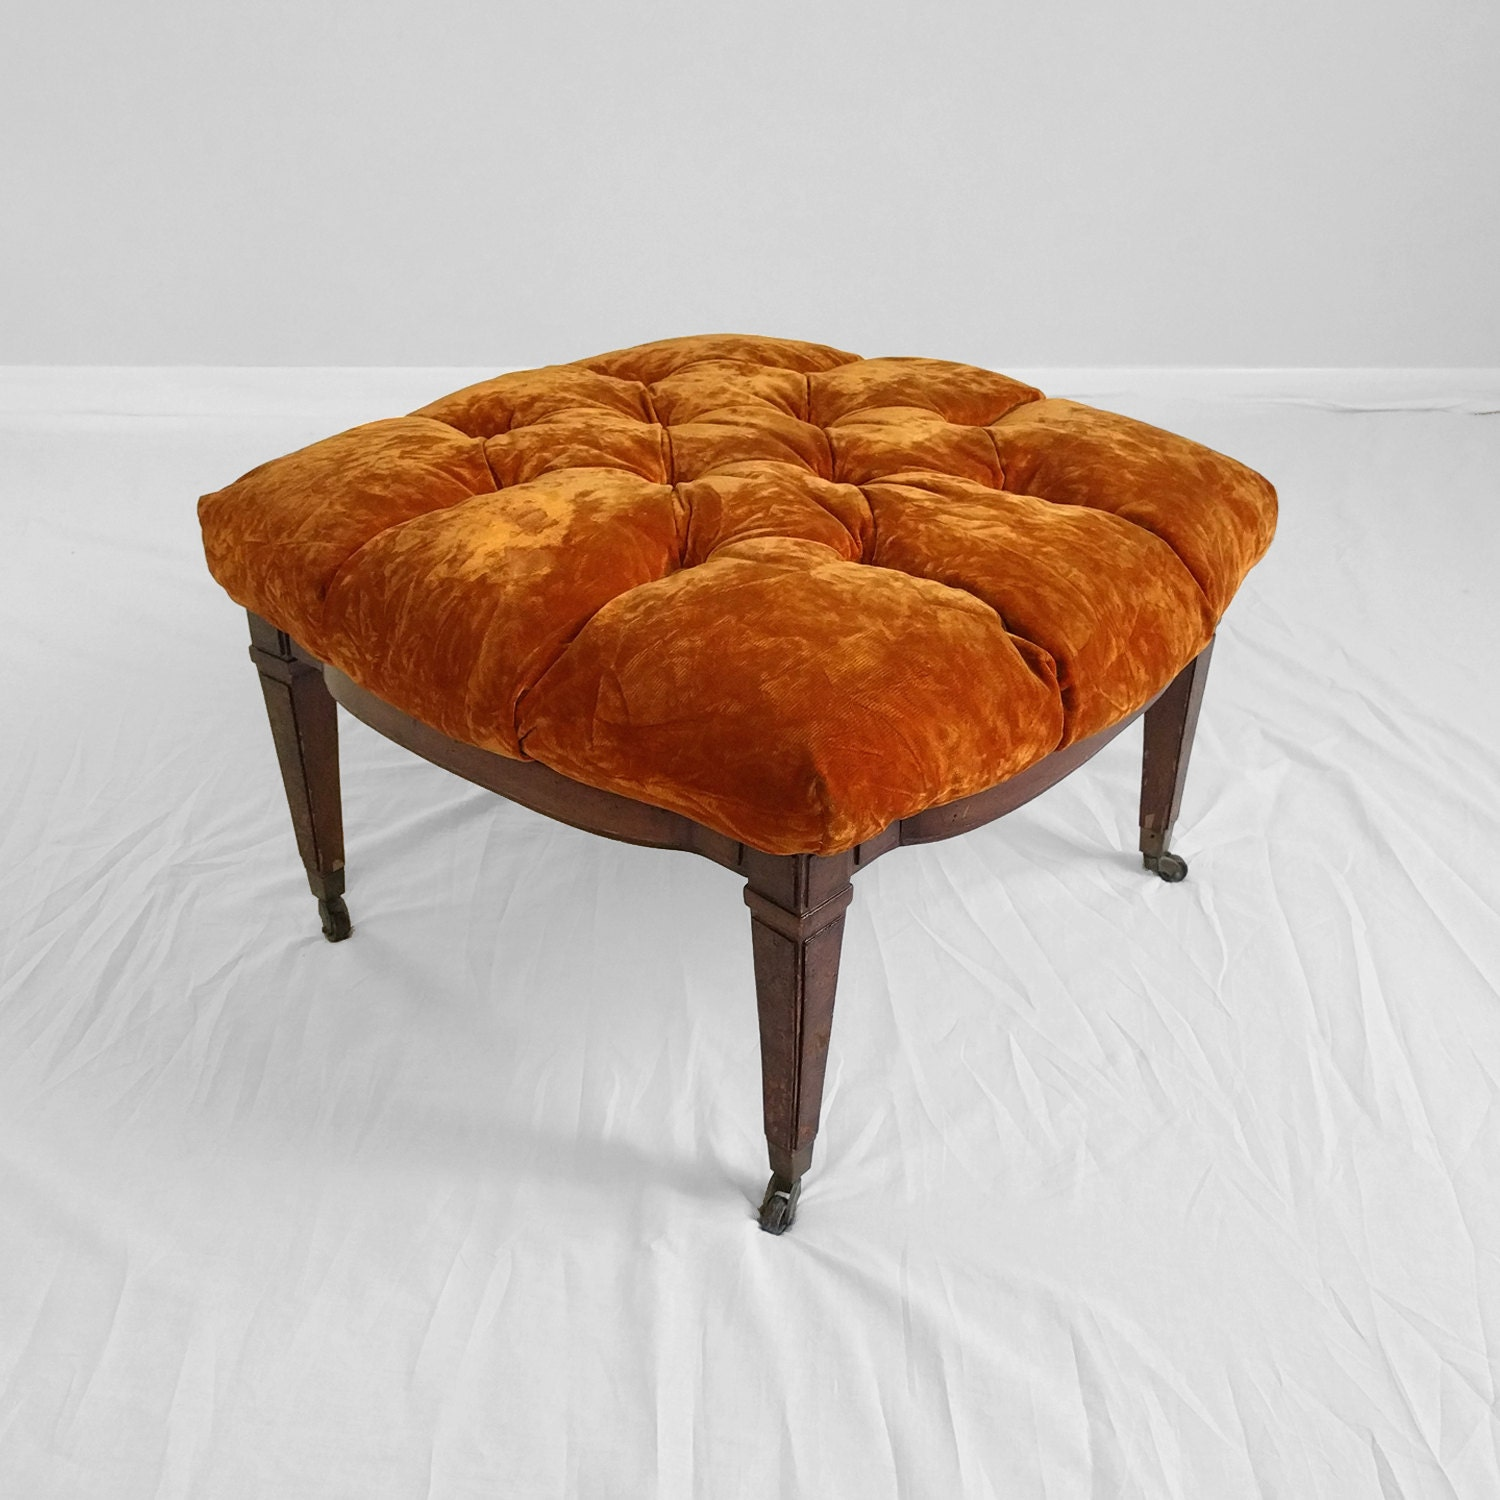 25 Sale Hollywood Regency Orange Velvet Tufted Ottoman